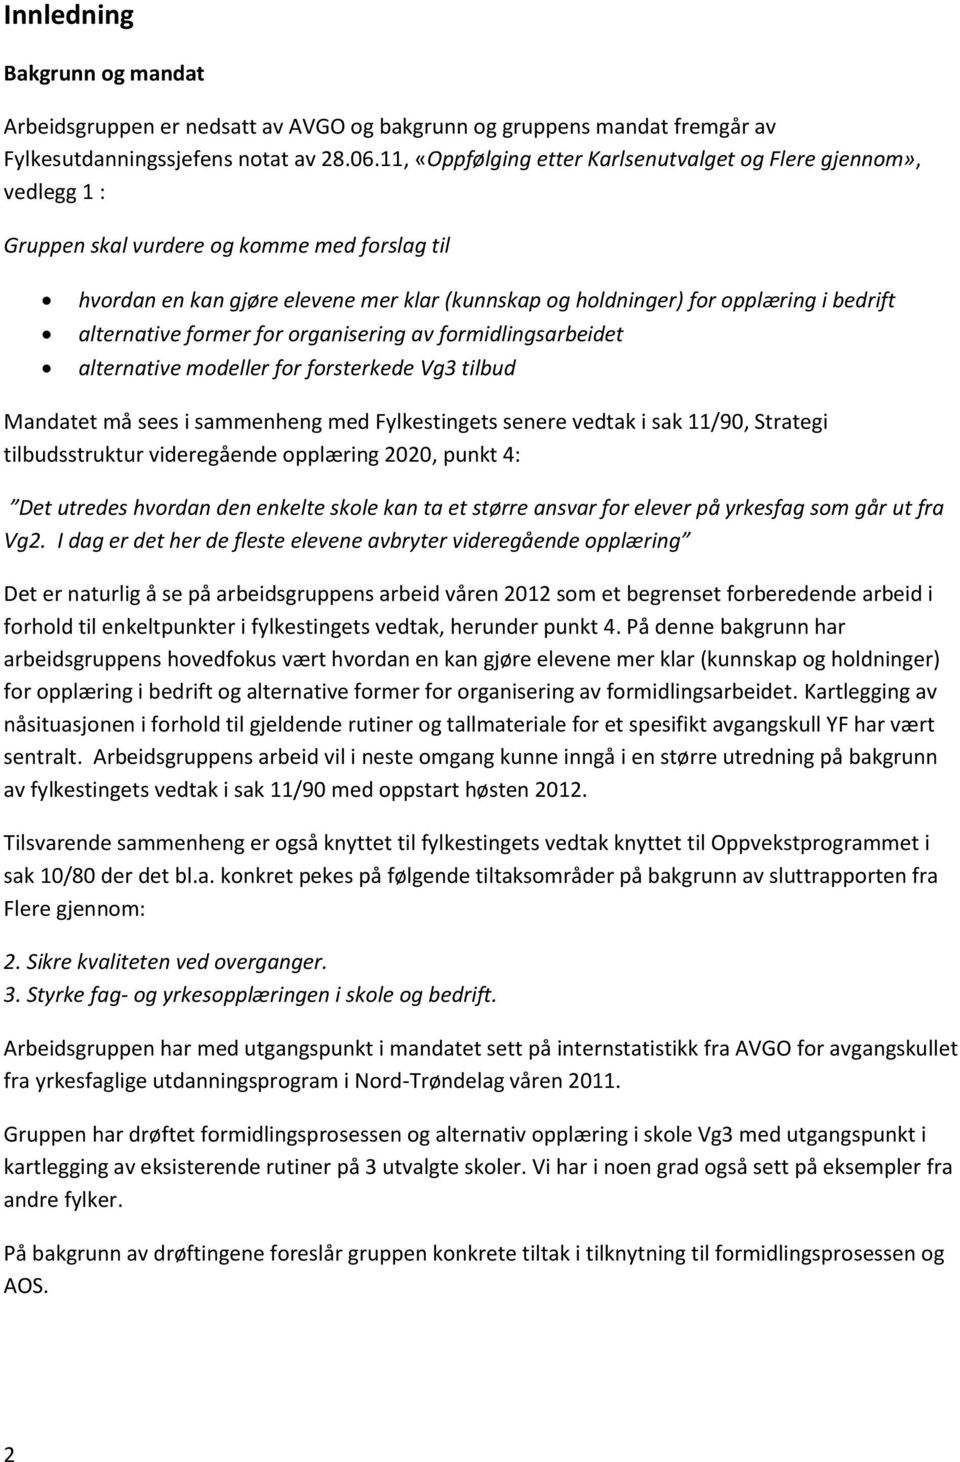 bedrift alternative former for organisering av formidlingsarbeidet alternative modeller for forsterkede Vg3 tilbud Mandatet må sees i sammenheng med Fylkestingets senere vedtak i sak 11/90, Strategi